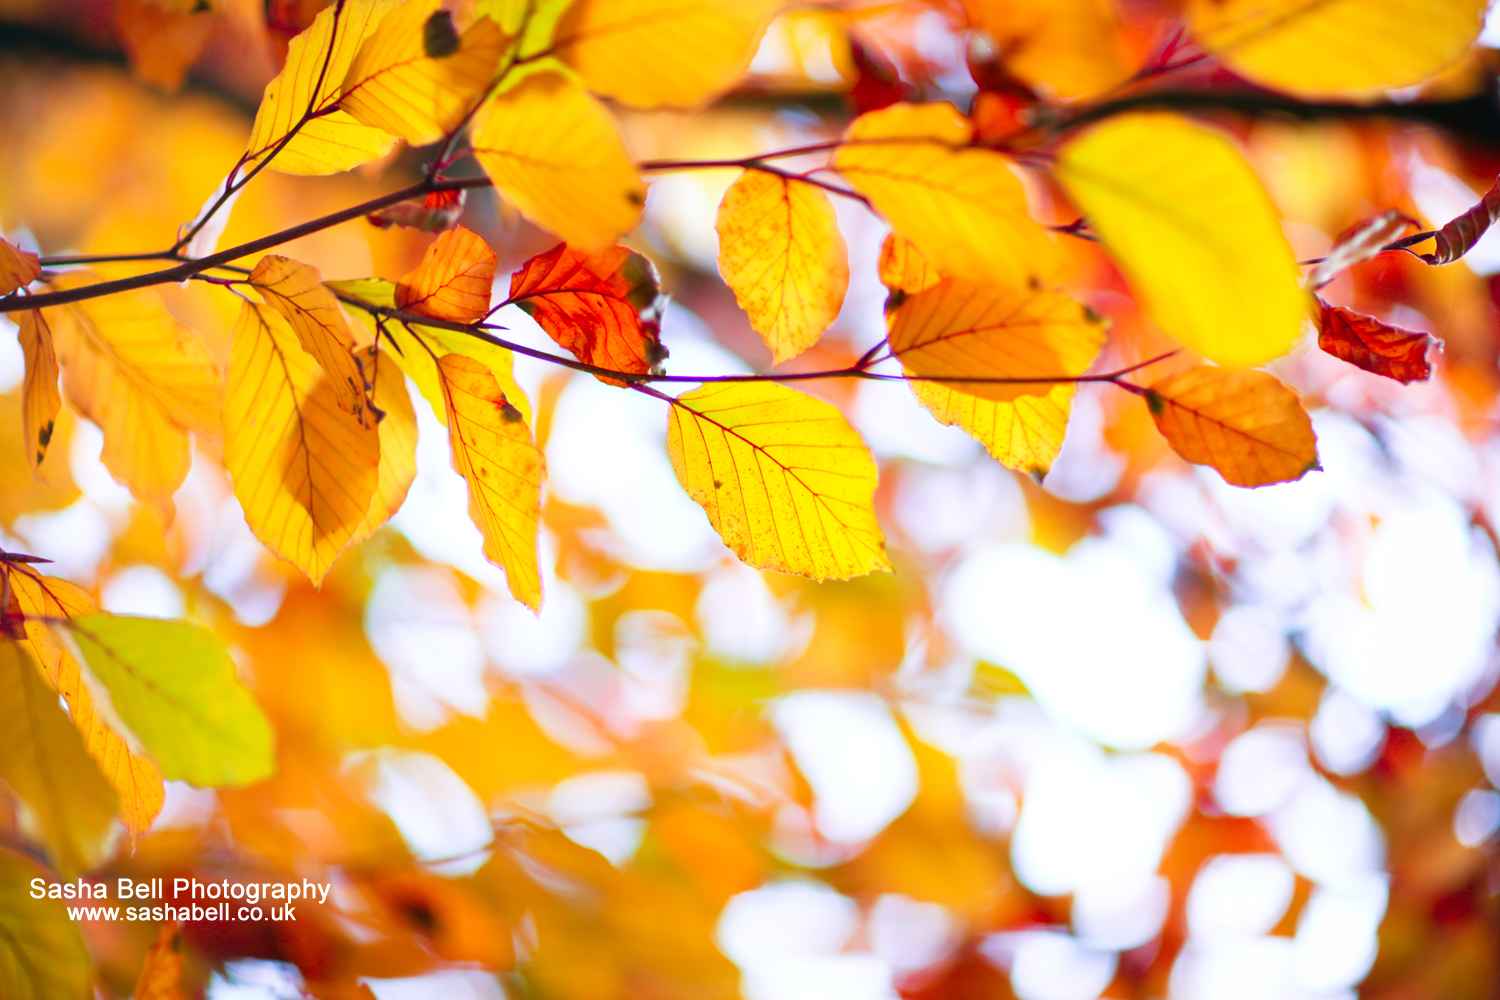 Autumn Leaves – Day 46/365